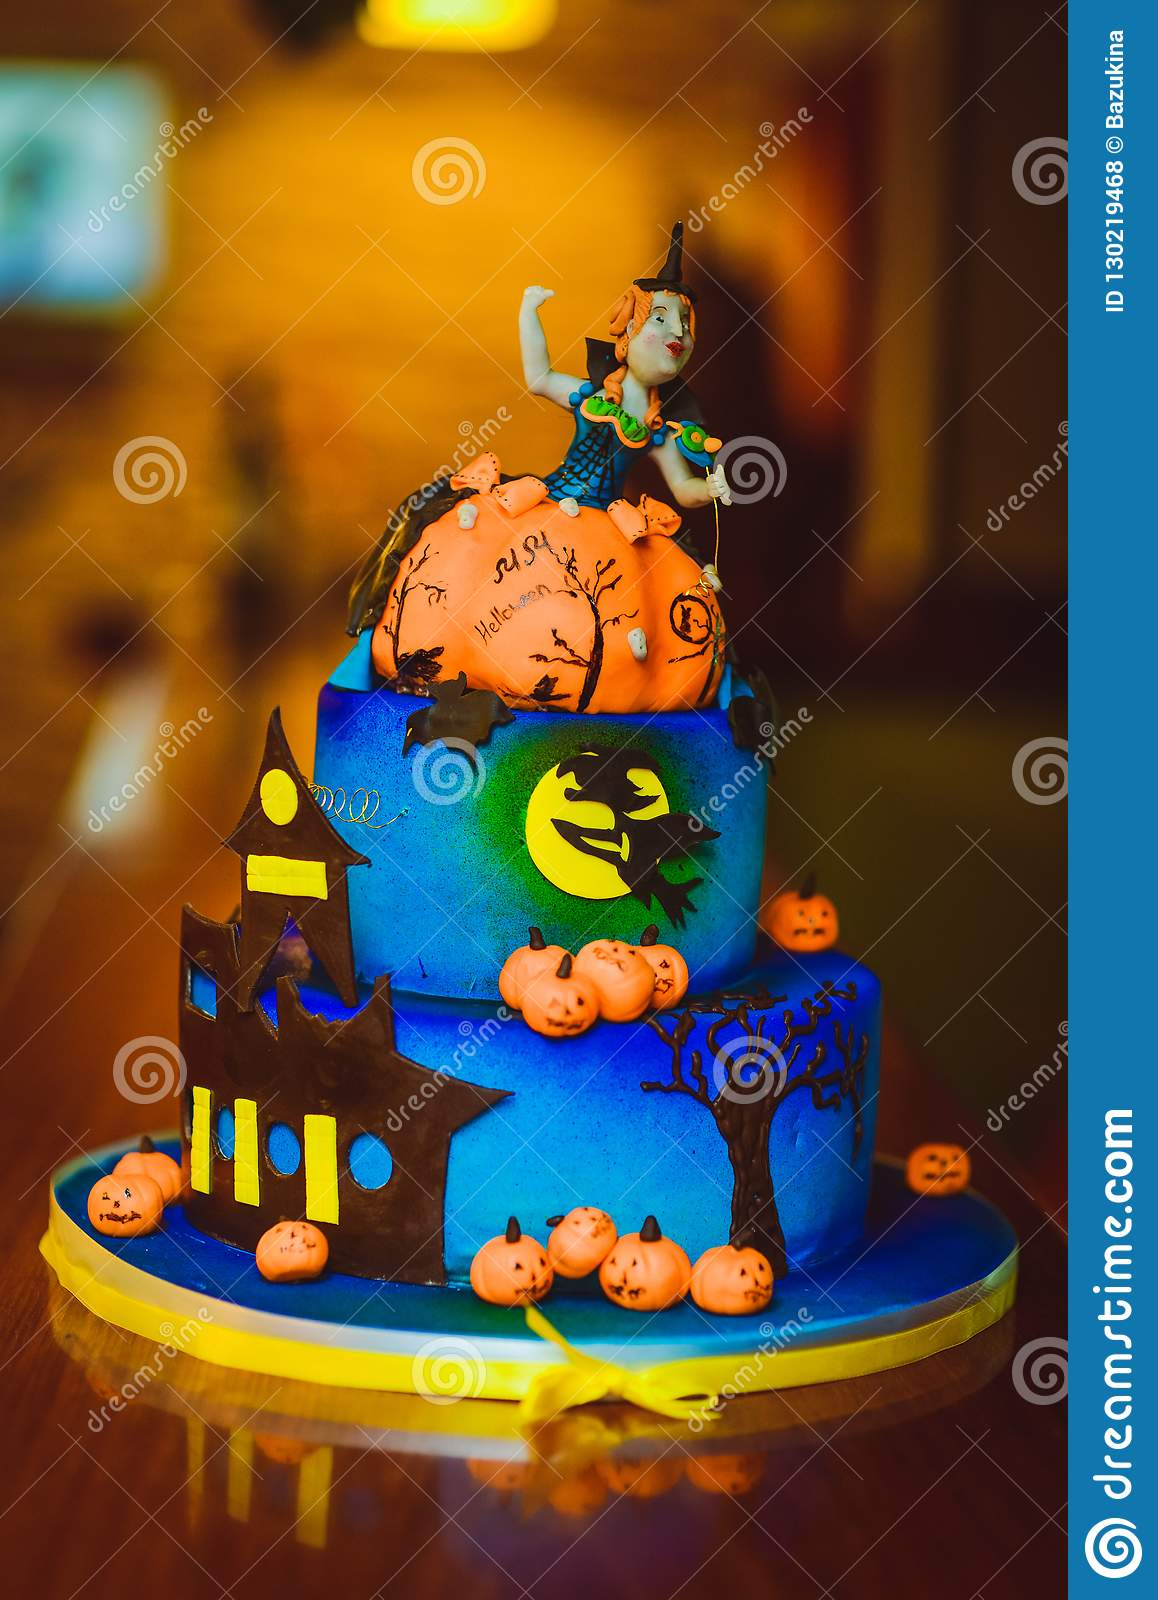 Halloween cake. Festive sweetness. Blue cake with figures of pumpkins and witches